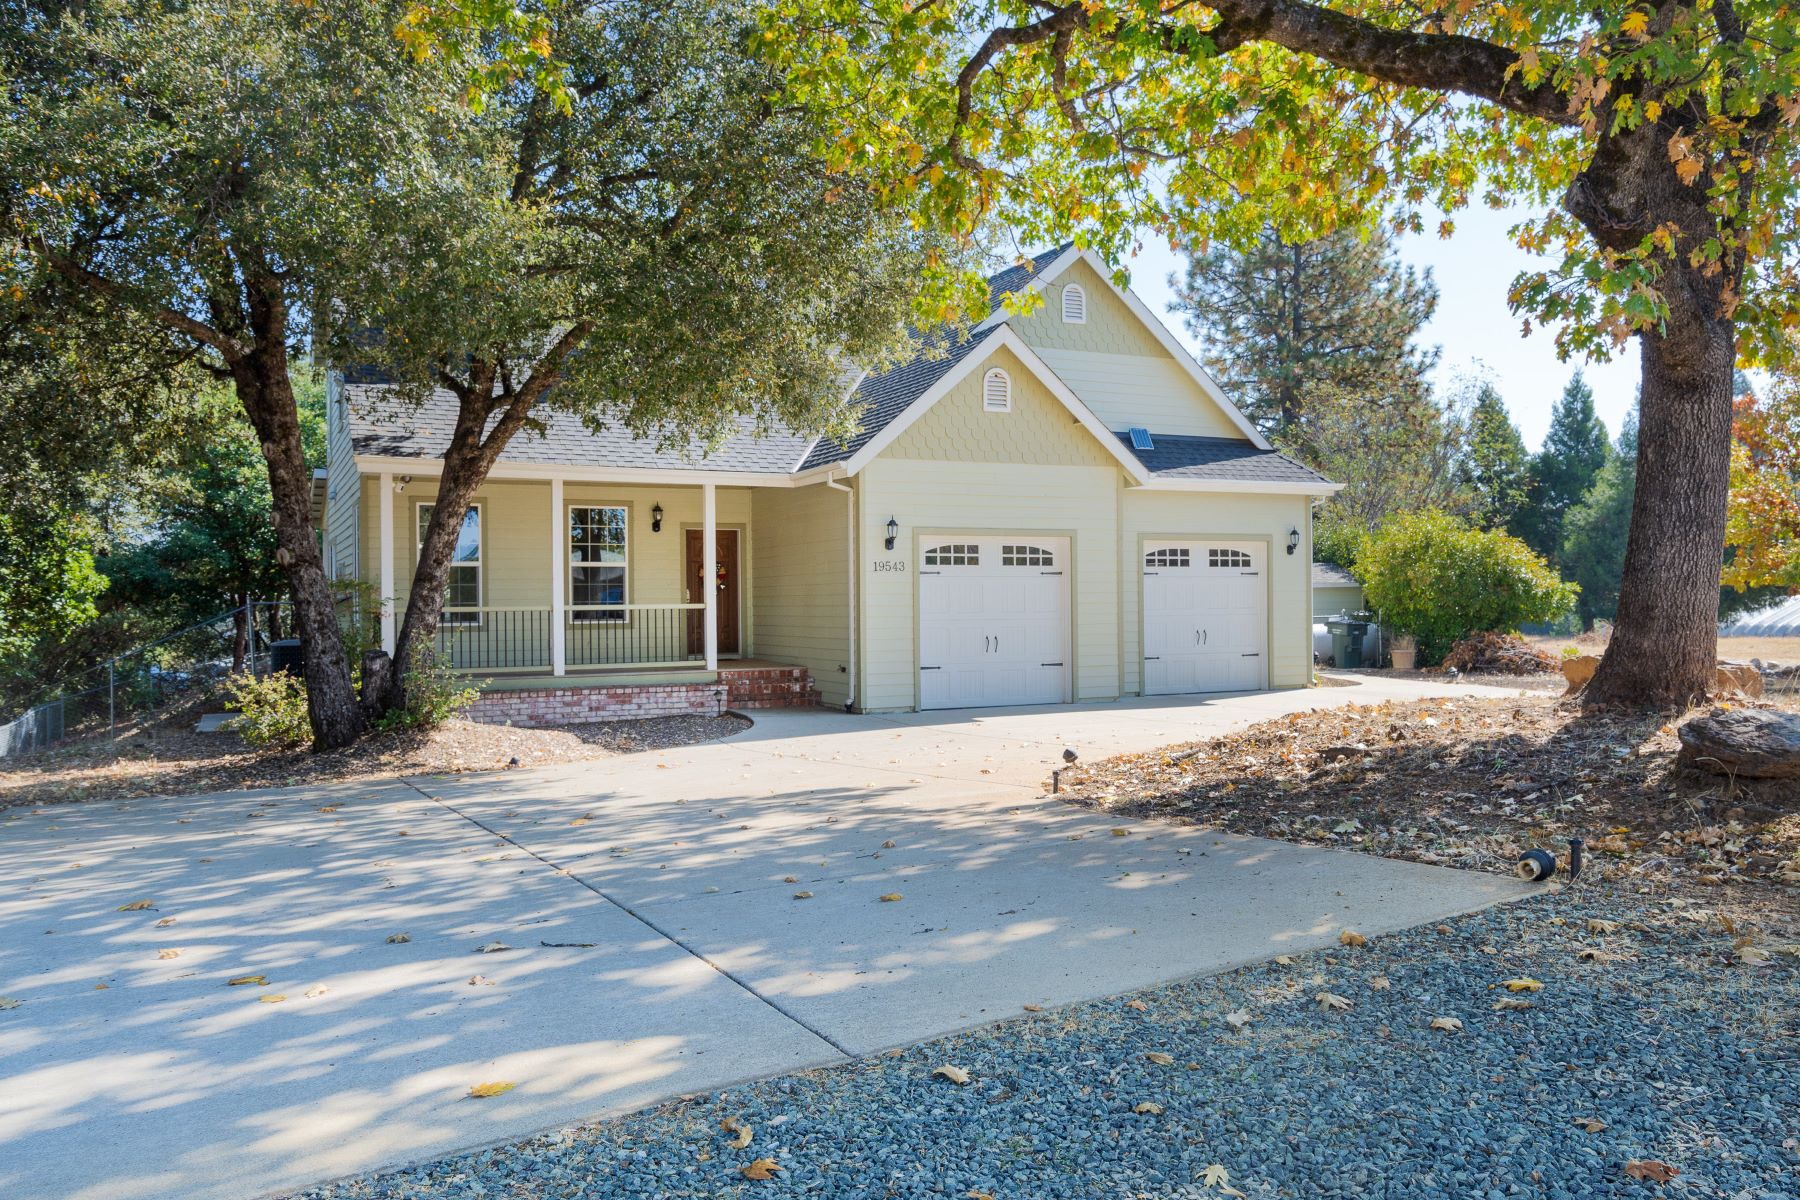 Single Family Homes for Sale at Full of Charm, Nice Views & Curb Appeal Galore 19543 Berry Street Pine Grove, California 95665 United States